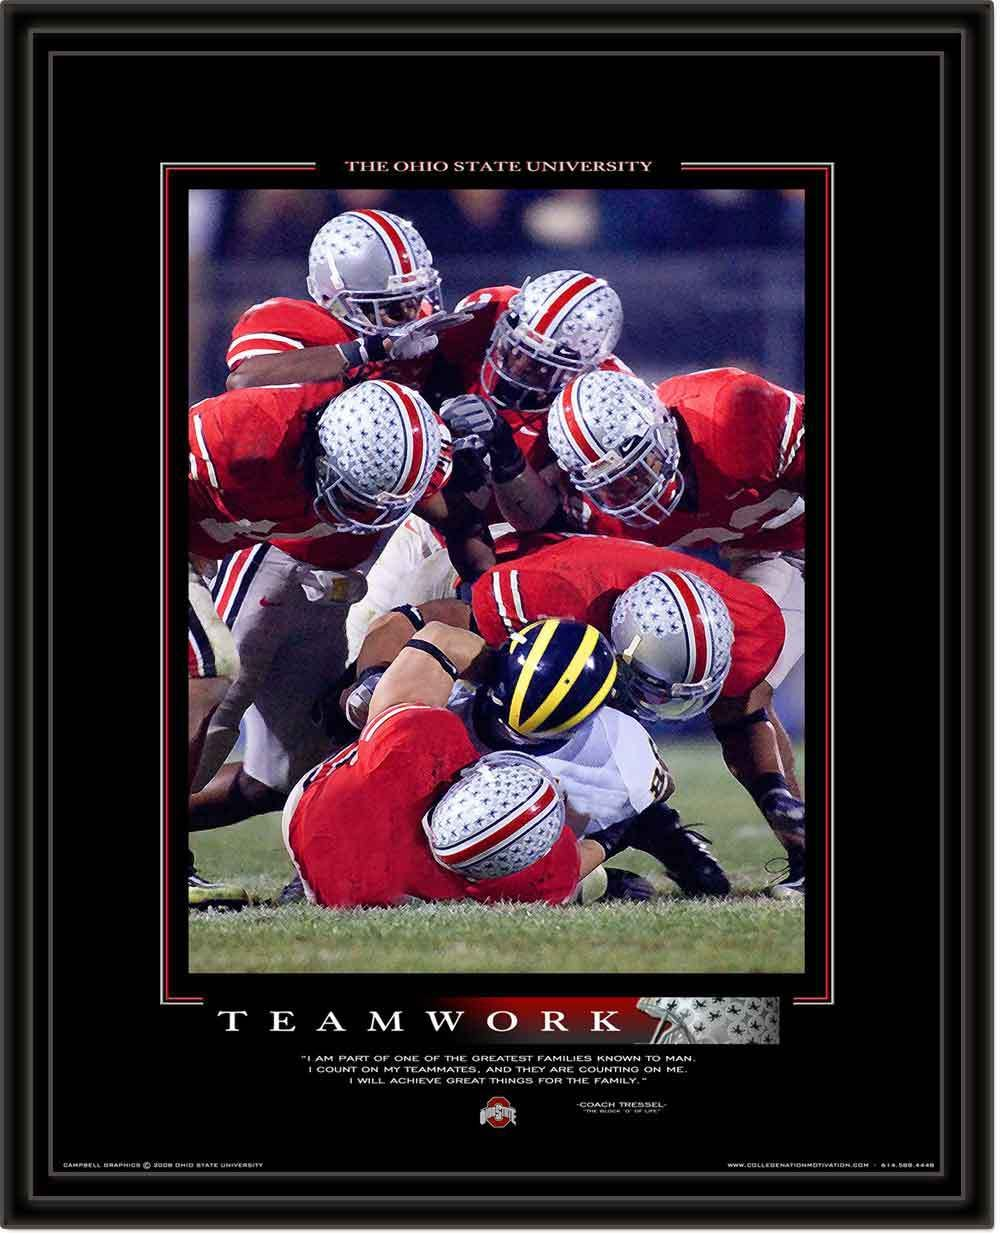 Ohio State Framed Teamwork Motivational Poster Ohio